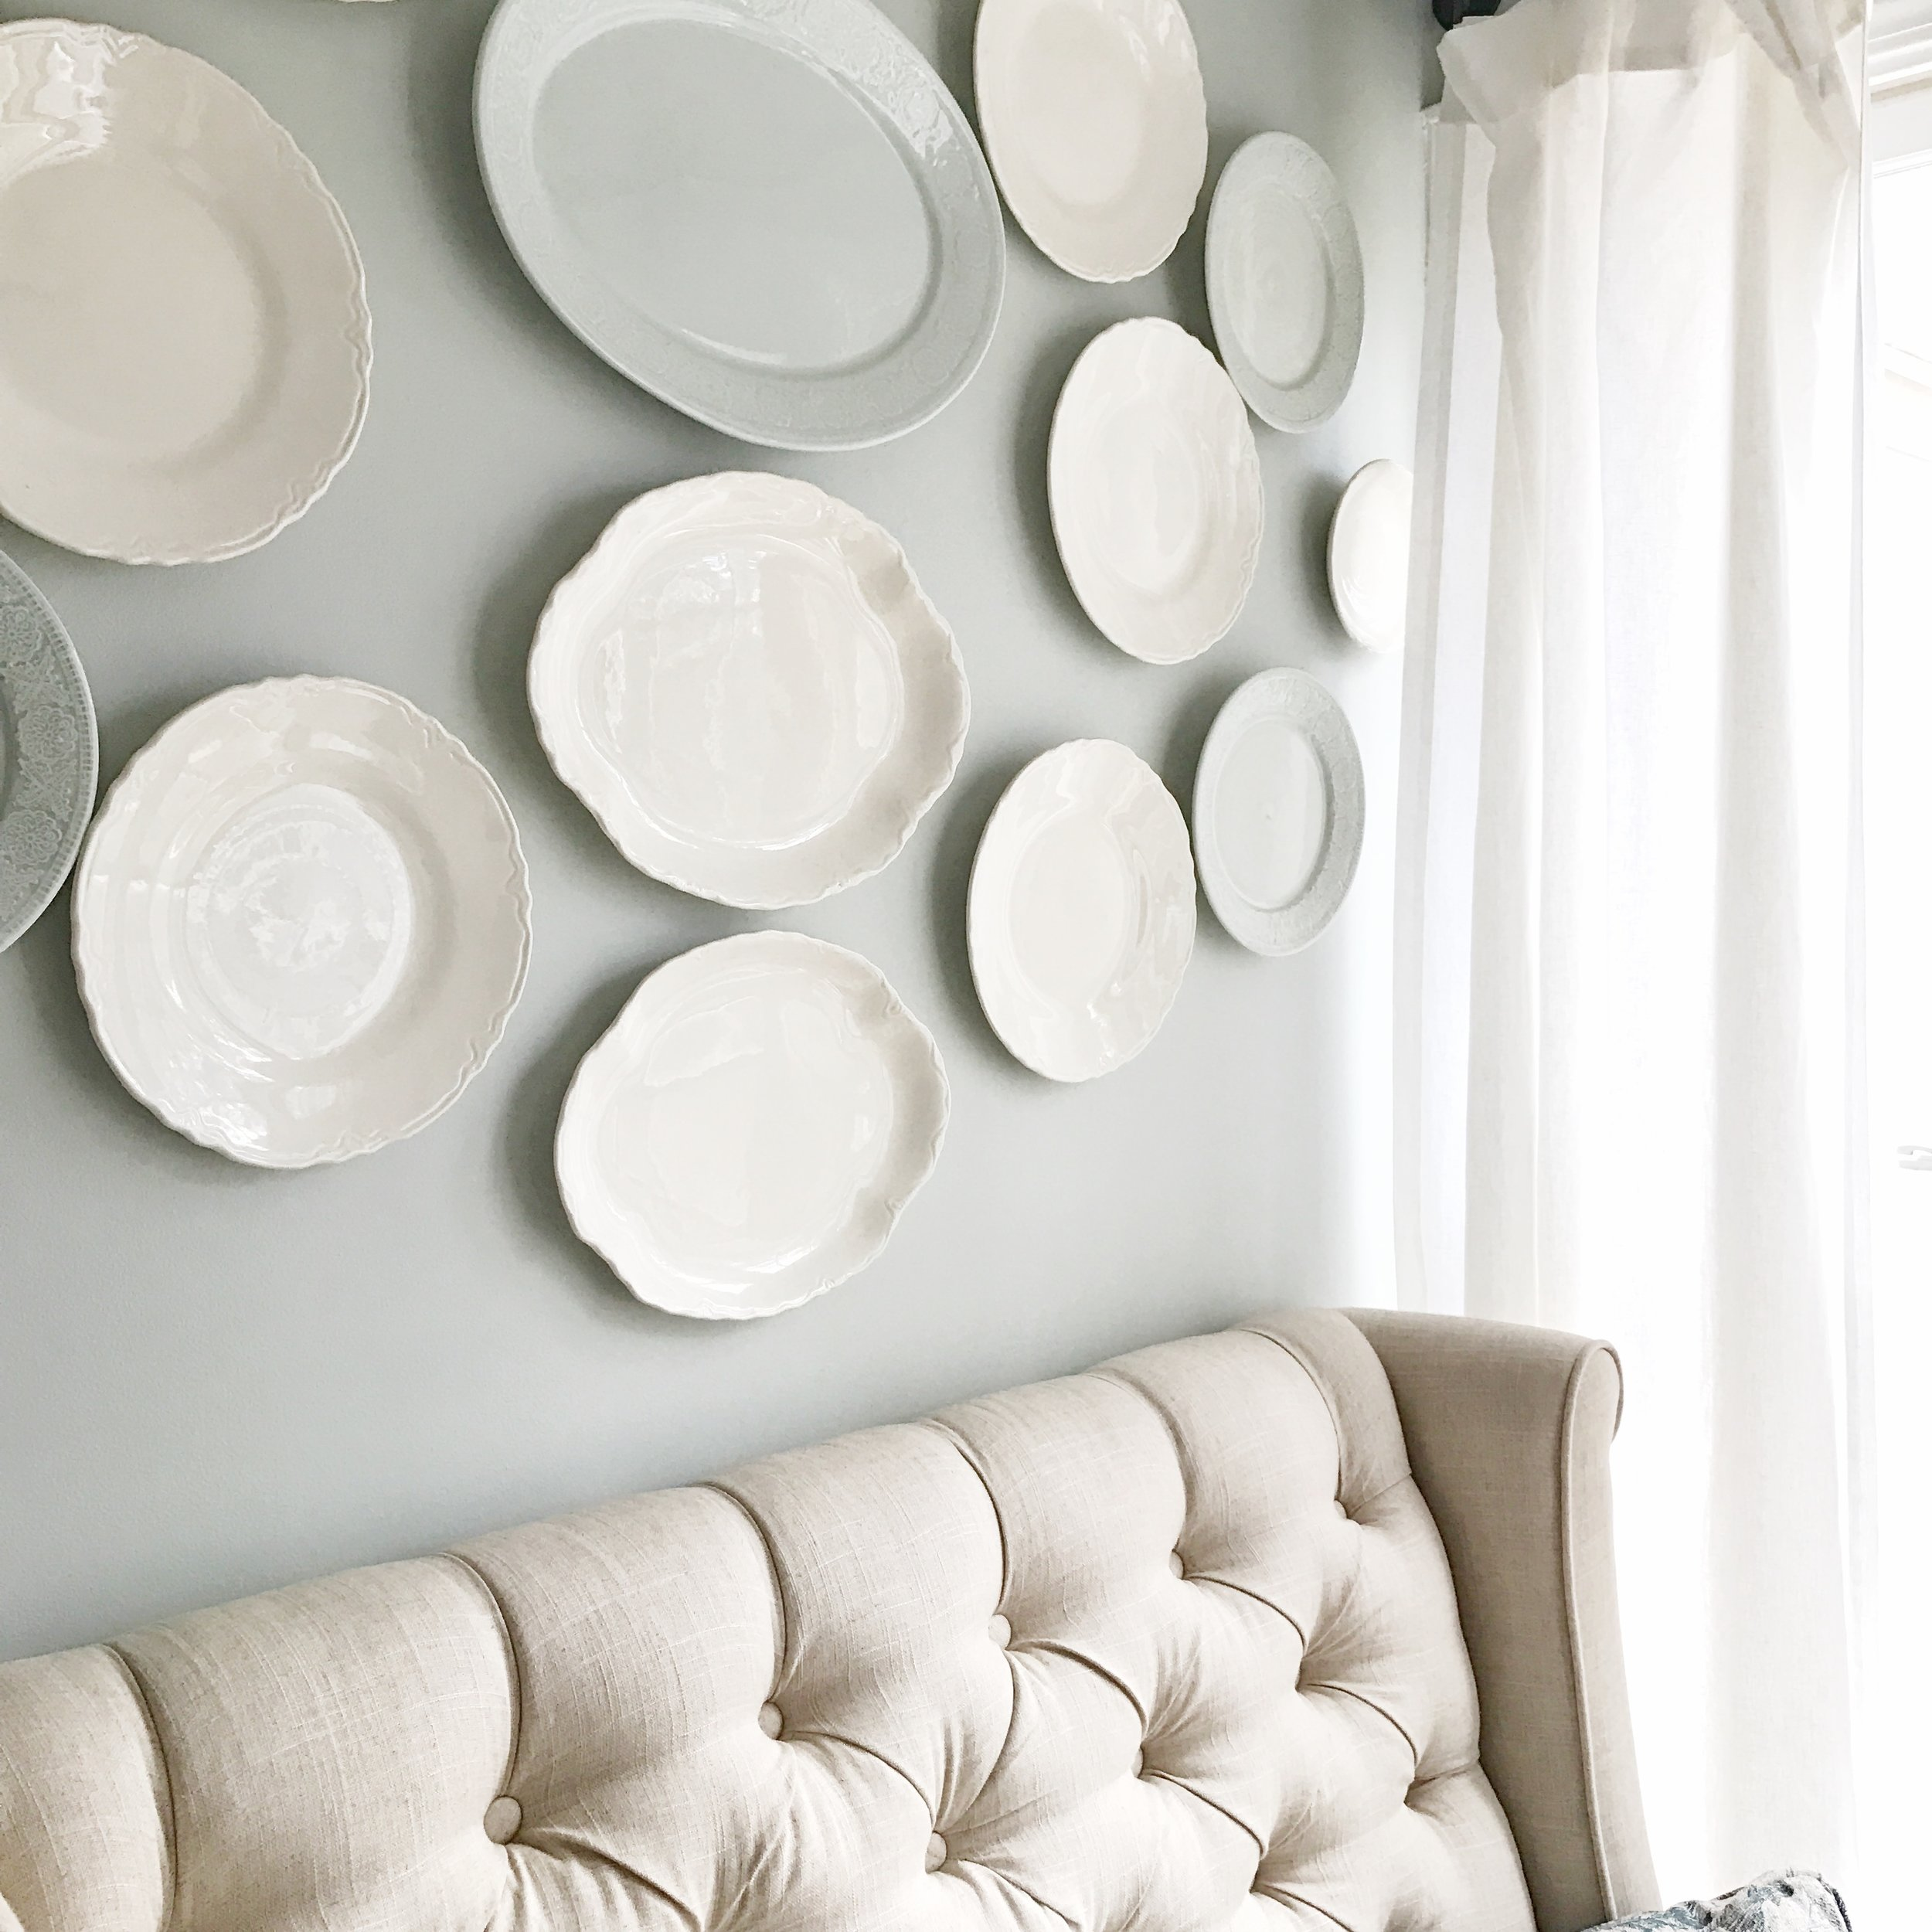 Home Tour- Farmhouse Style Breakfast Nook with a White DIY Plate Wall by Plum Pretty Decor and Design